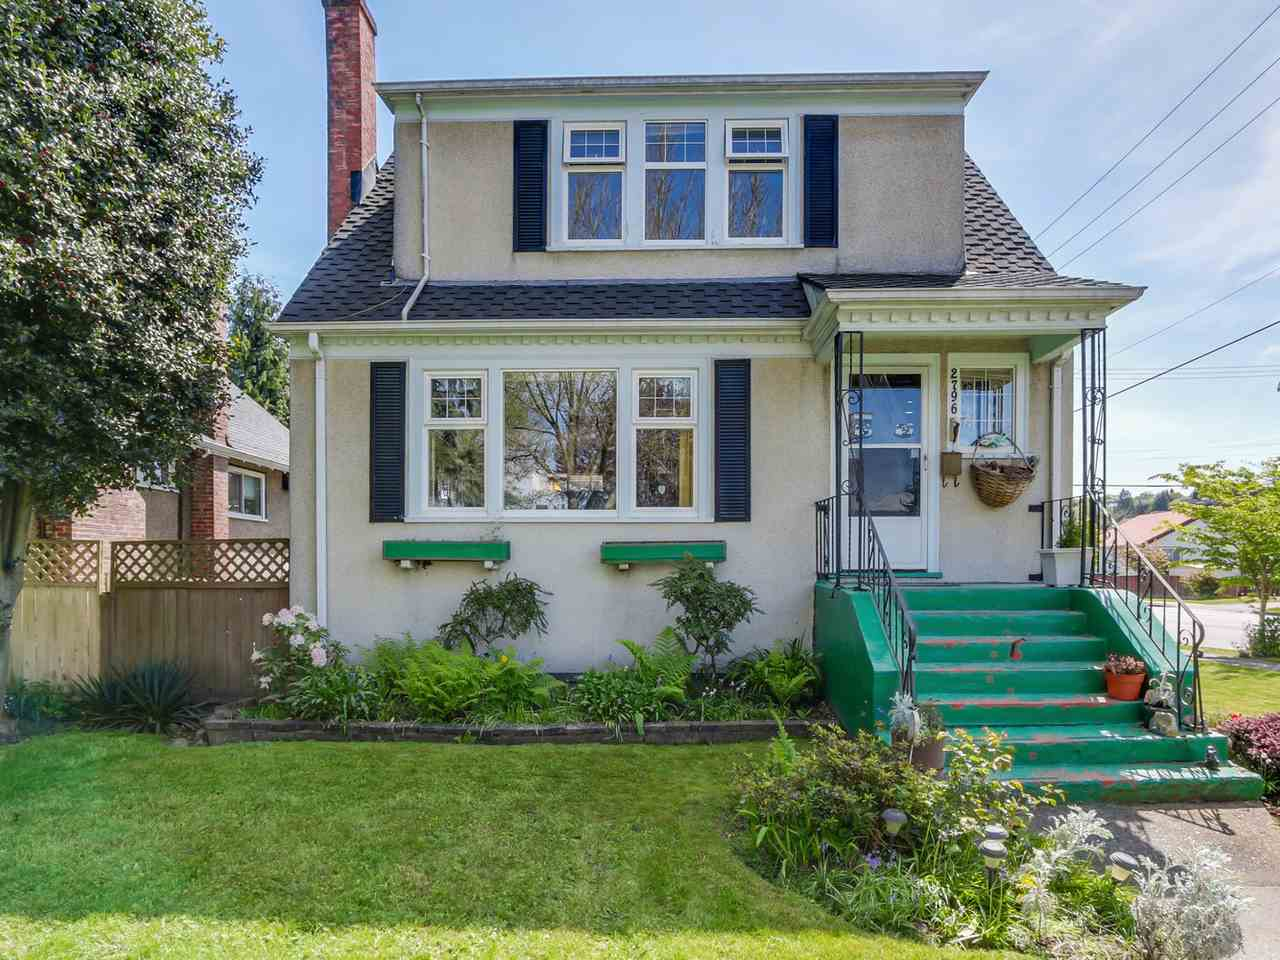 Main Photo: 2796 W 21ST Avenue in Vancouver: Arbutus House for sale (Vancouver West)  : MLS® # R2078868